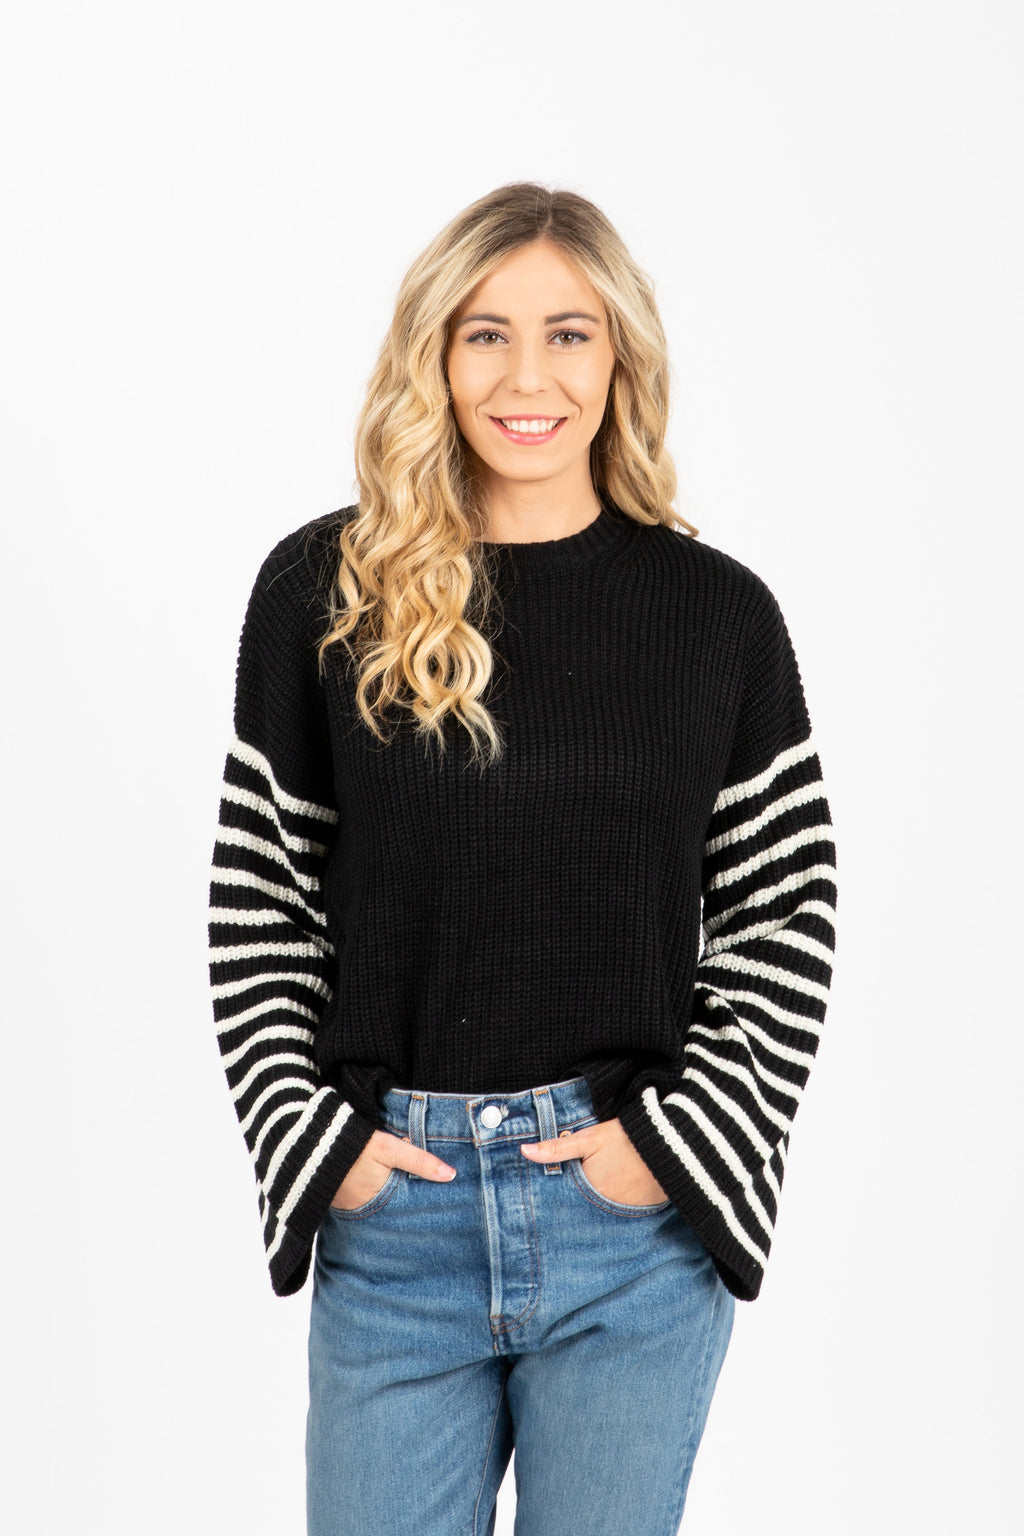 The Daisy Striped Sleeve Sweater in Black